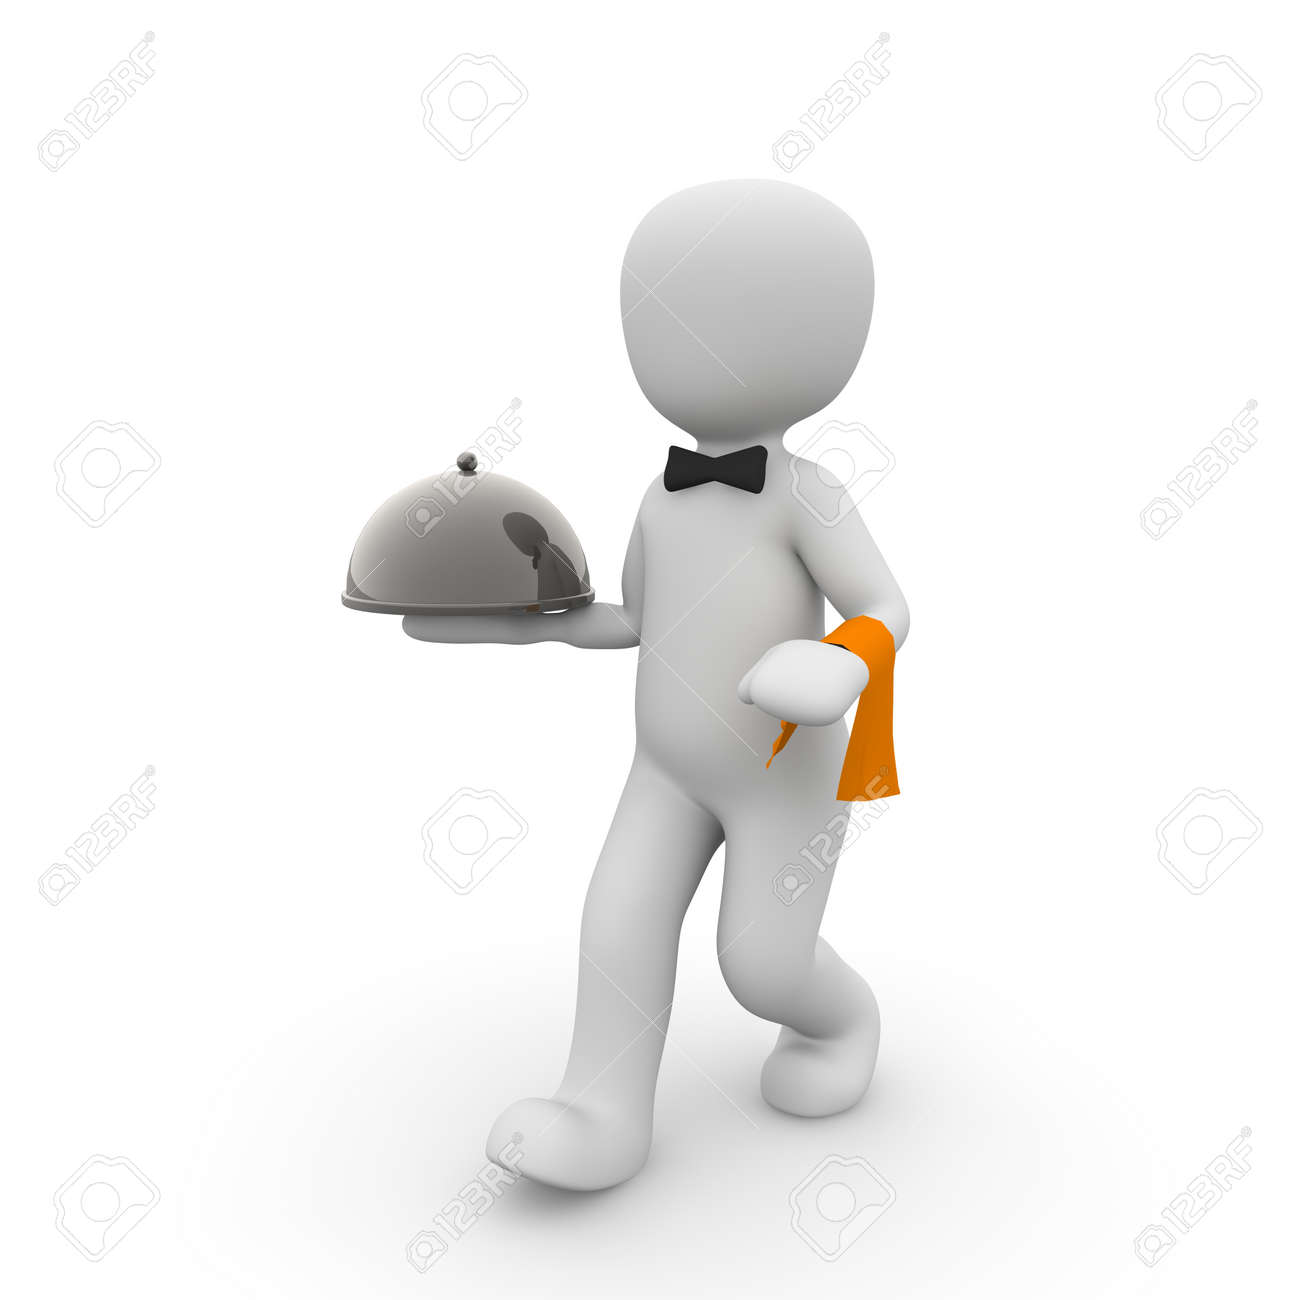 The waiter working for the landlord. Who will not be host. Stock Photo - 18811758